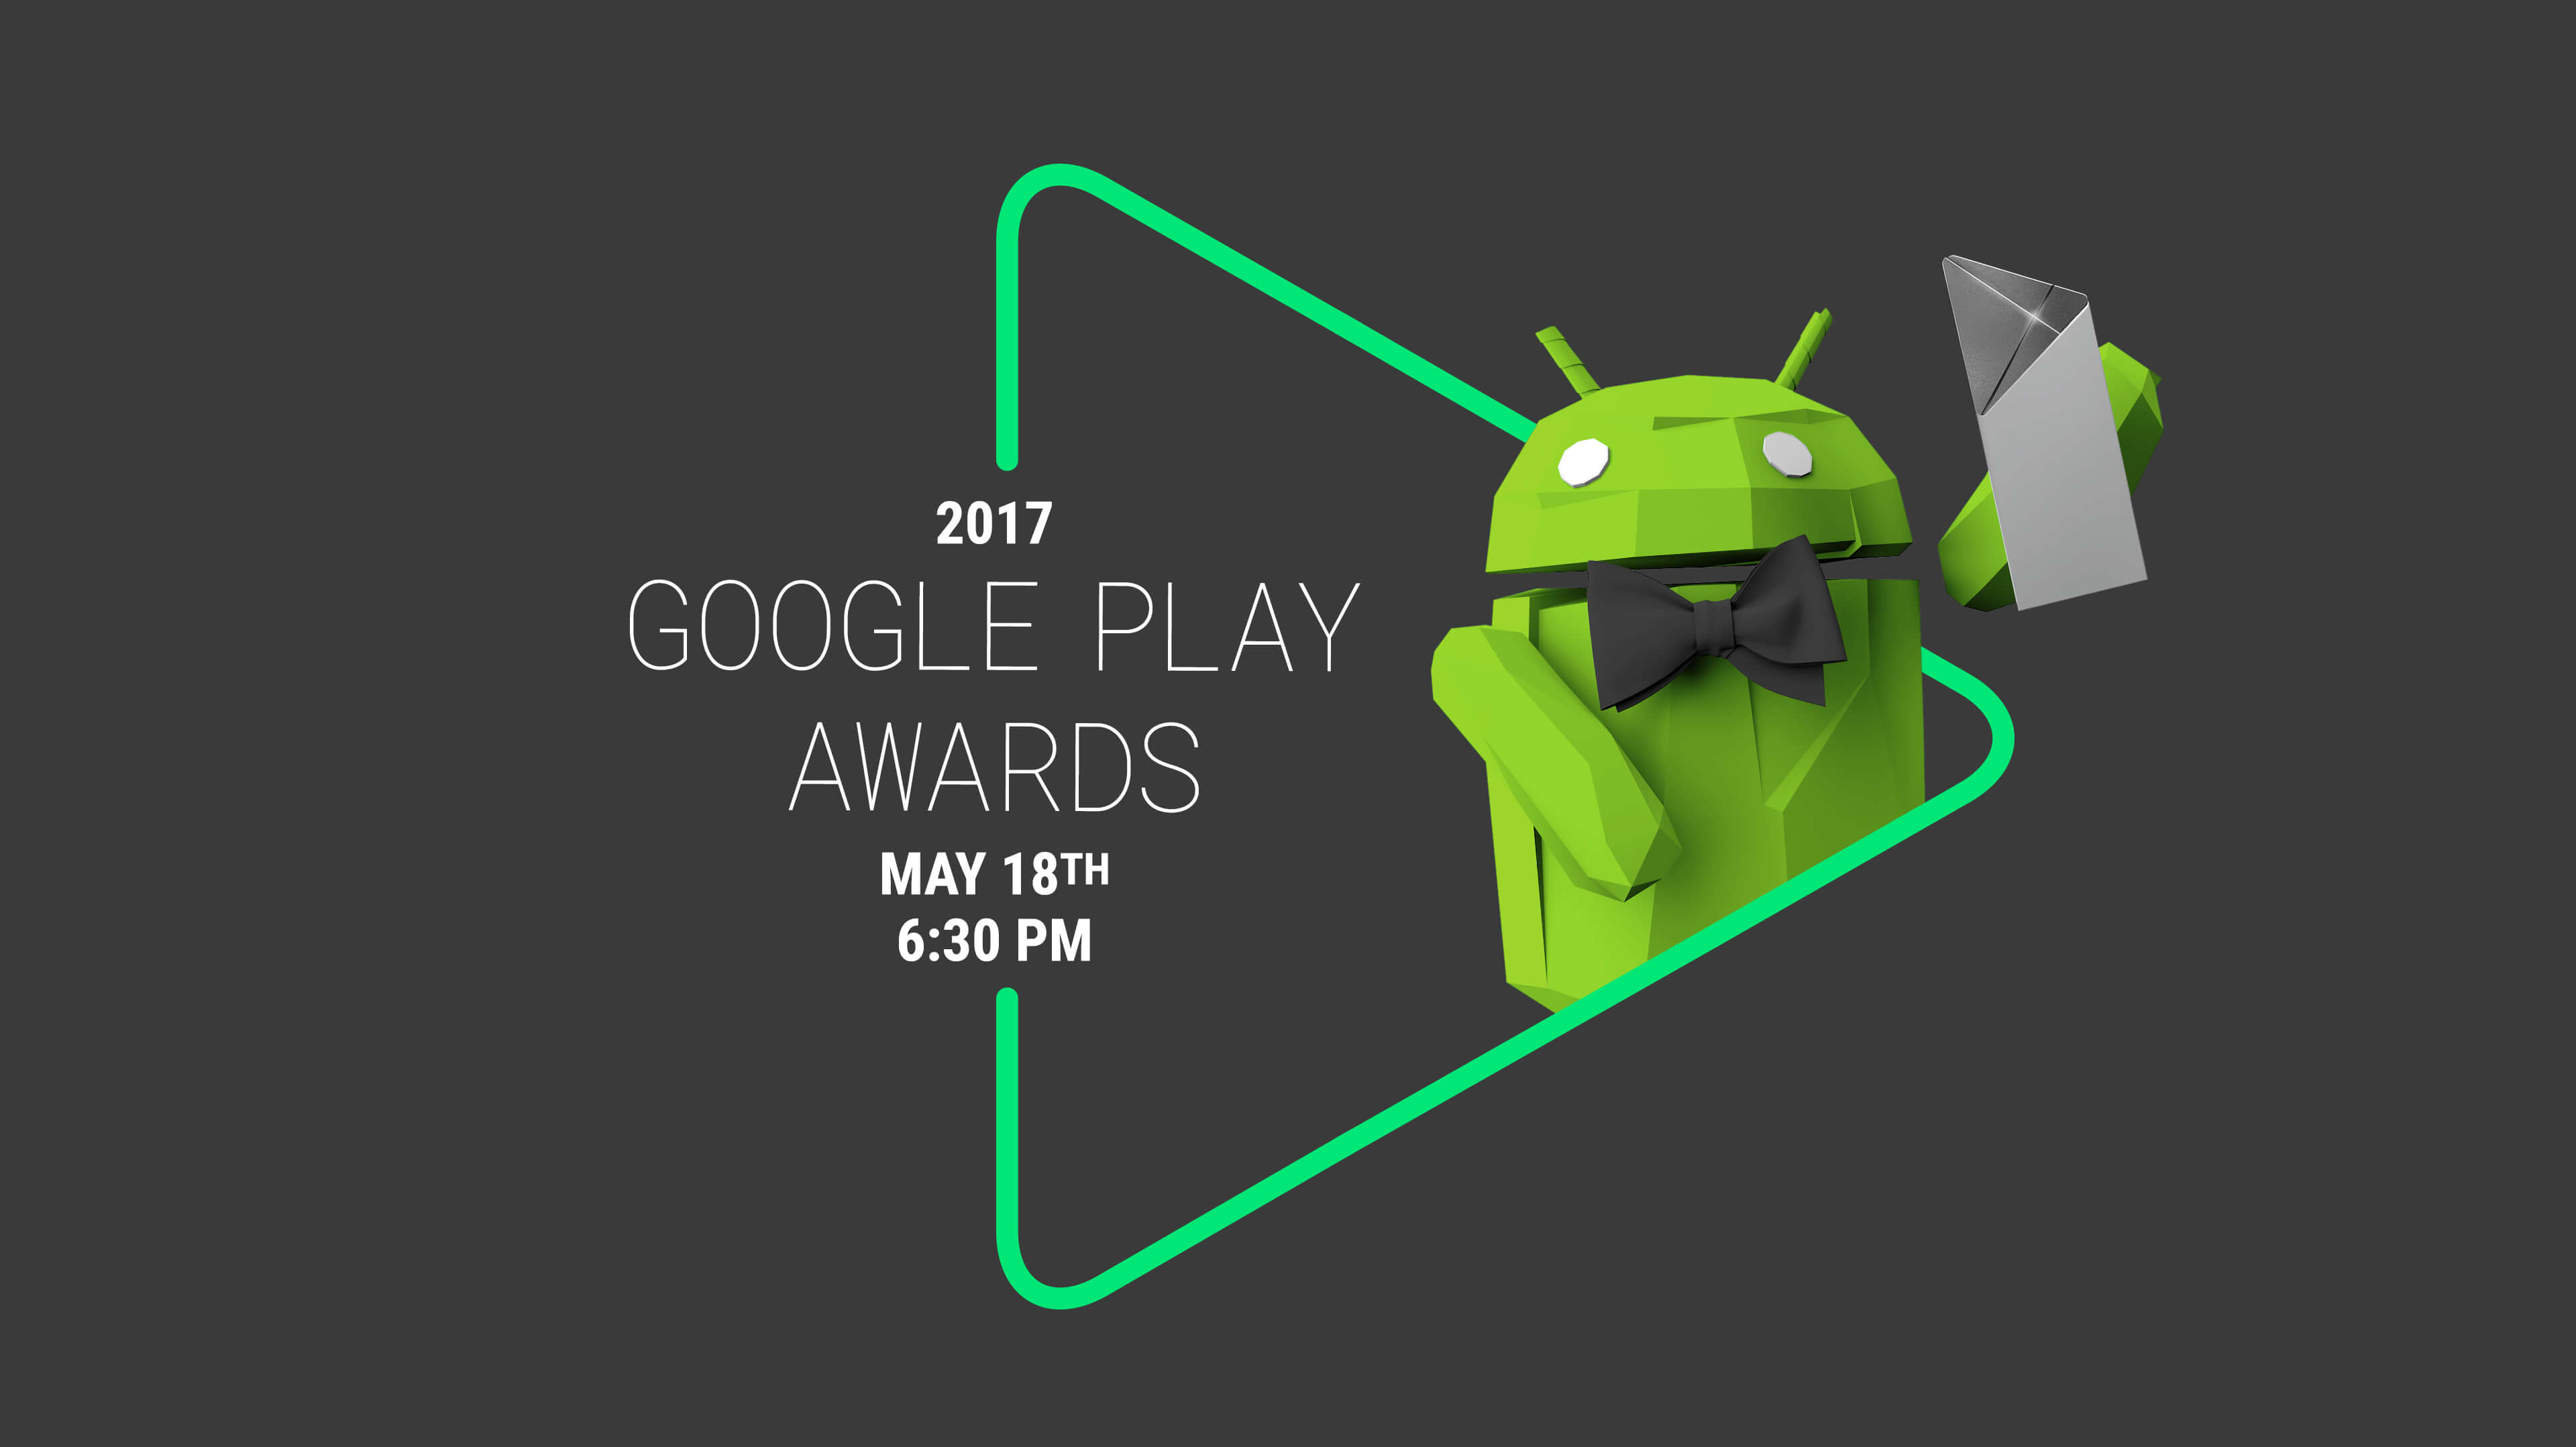 Google Play Awards - 2017 Poster